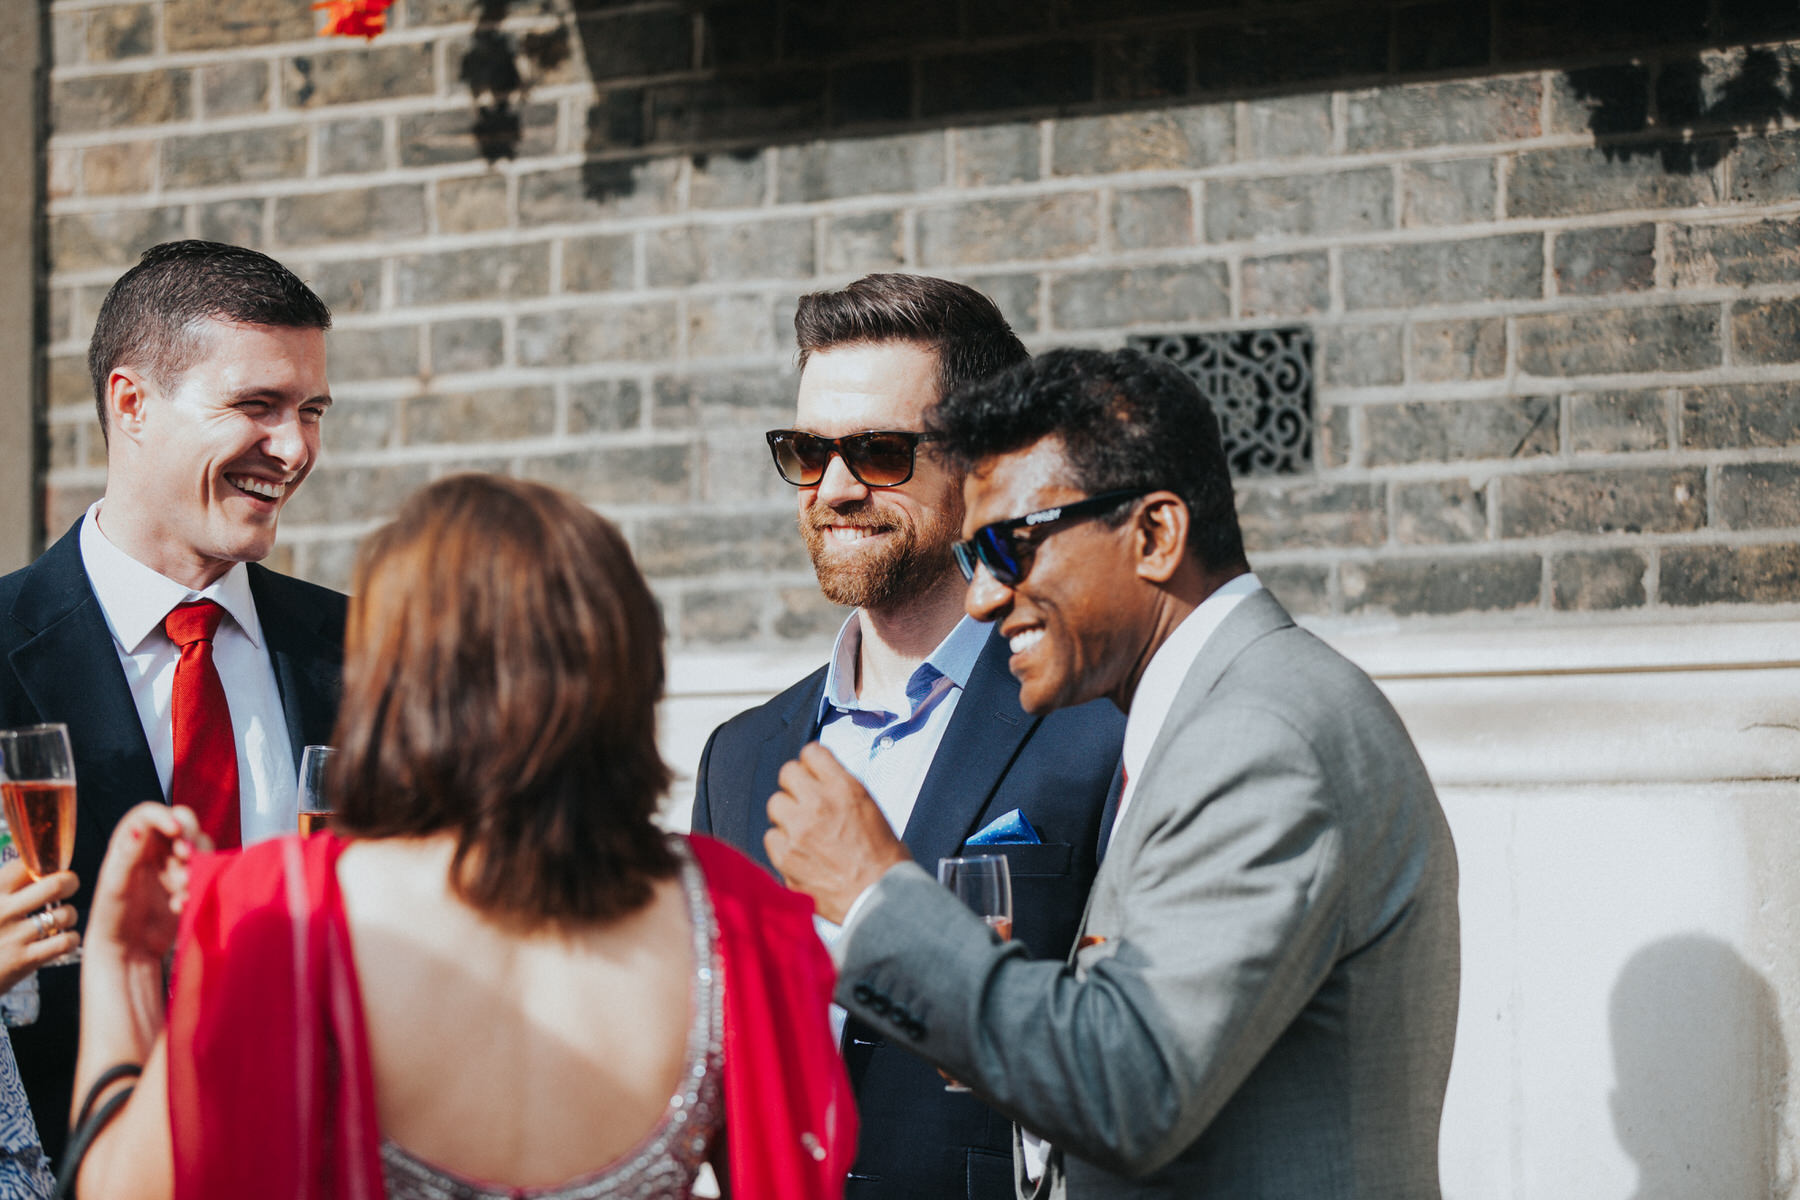 100-Wedding-Middle-temple-drinks-reception-guests-champagne-cocktails.jpg